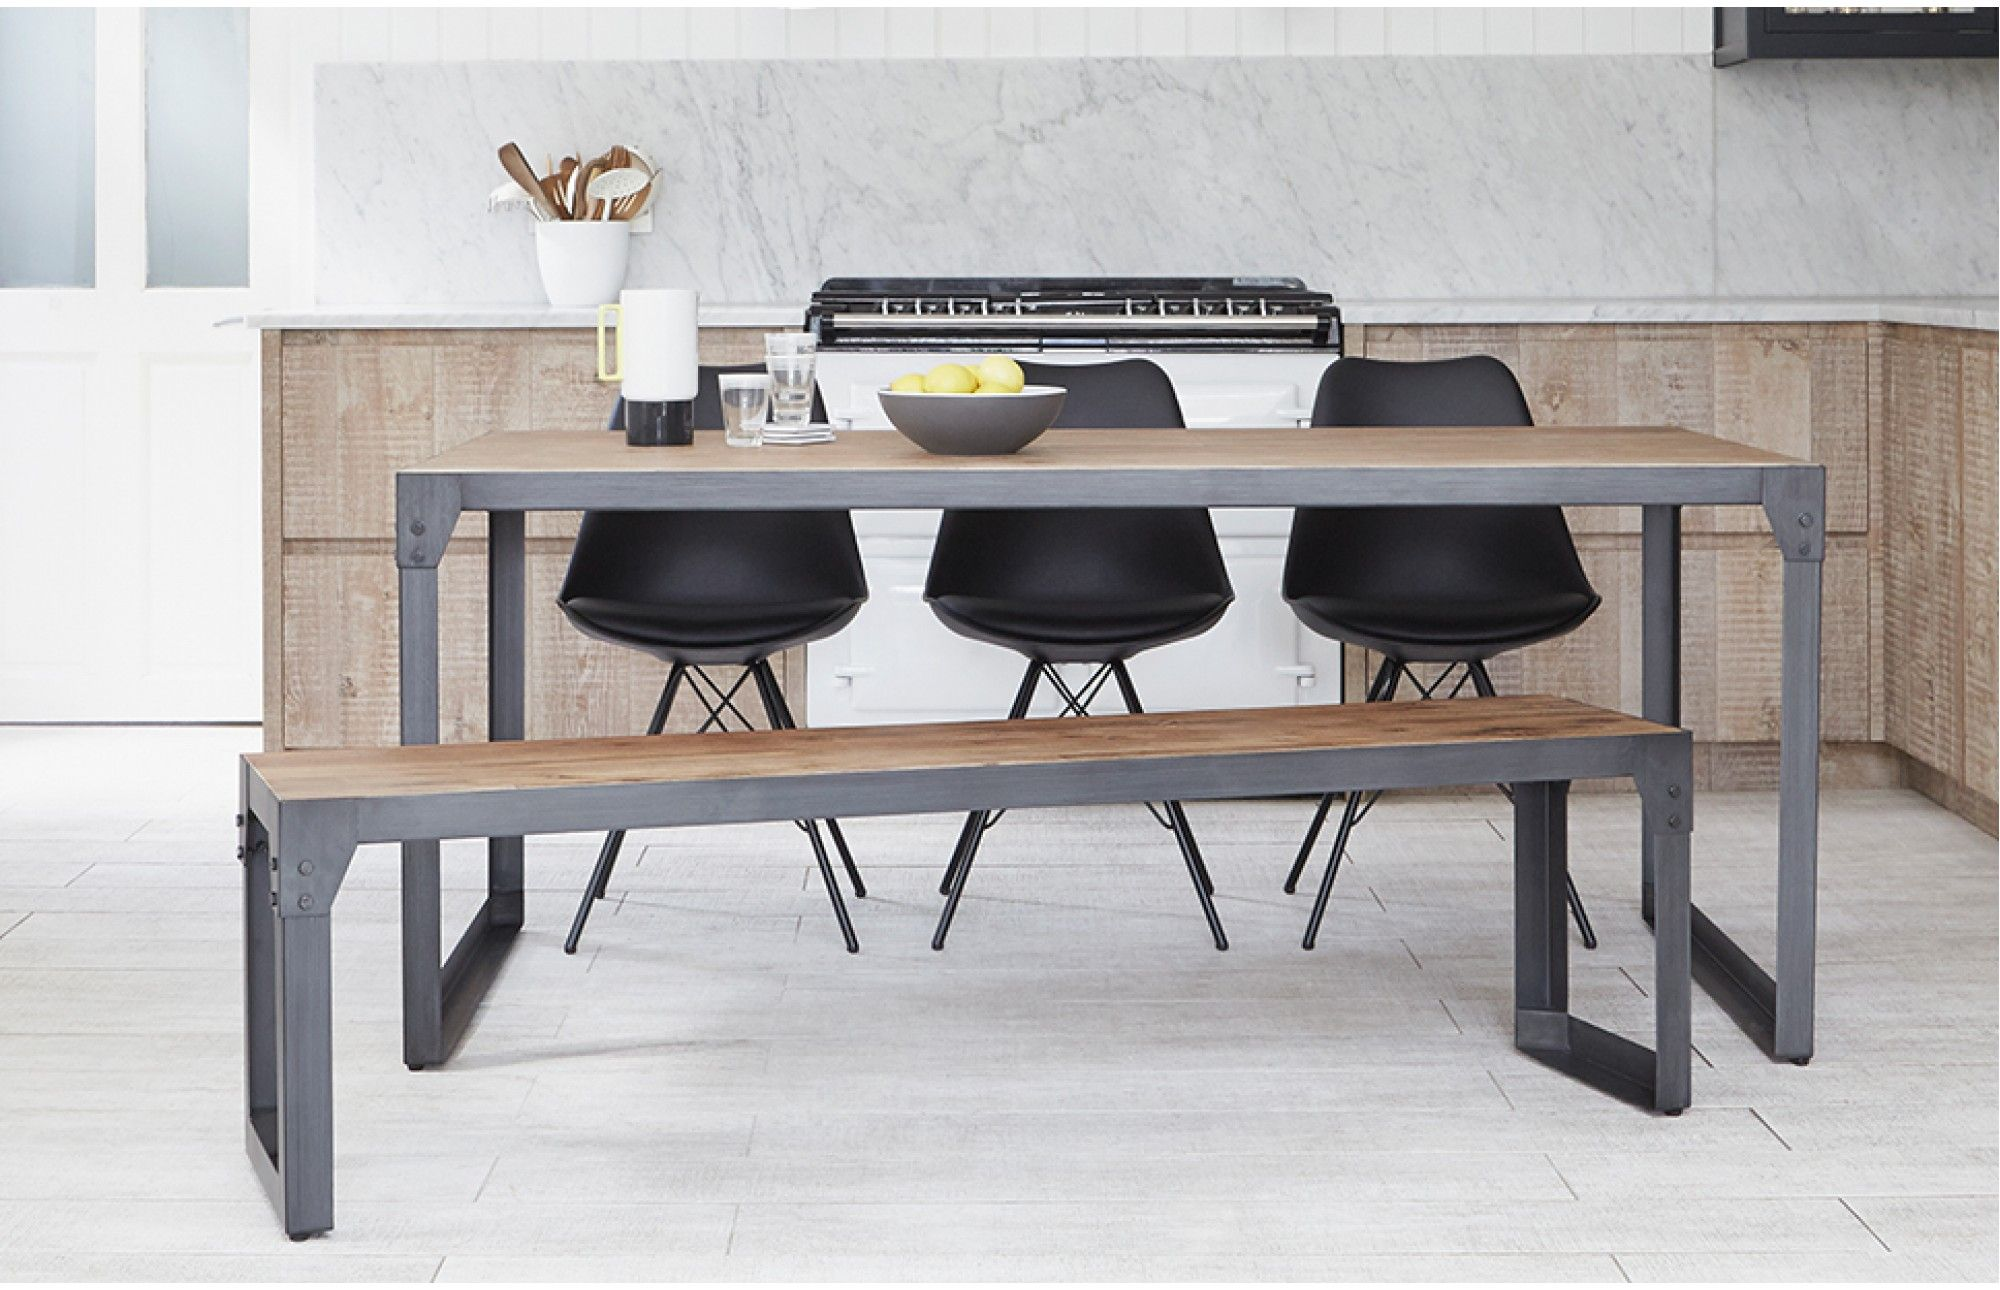 Captivating Combine The Iconic Eames Style Bucket Chair In Black With The Brunel Industrial  Dining Table And Bench To Create An Original And Practical Dining Set For  ...